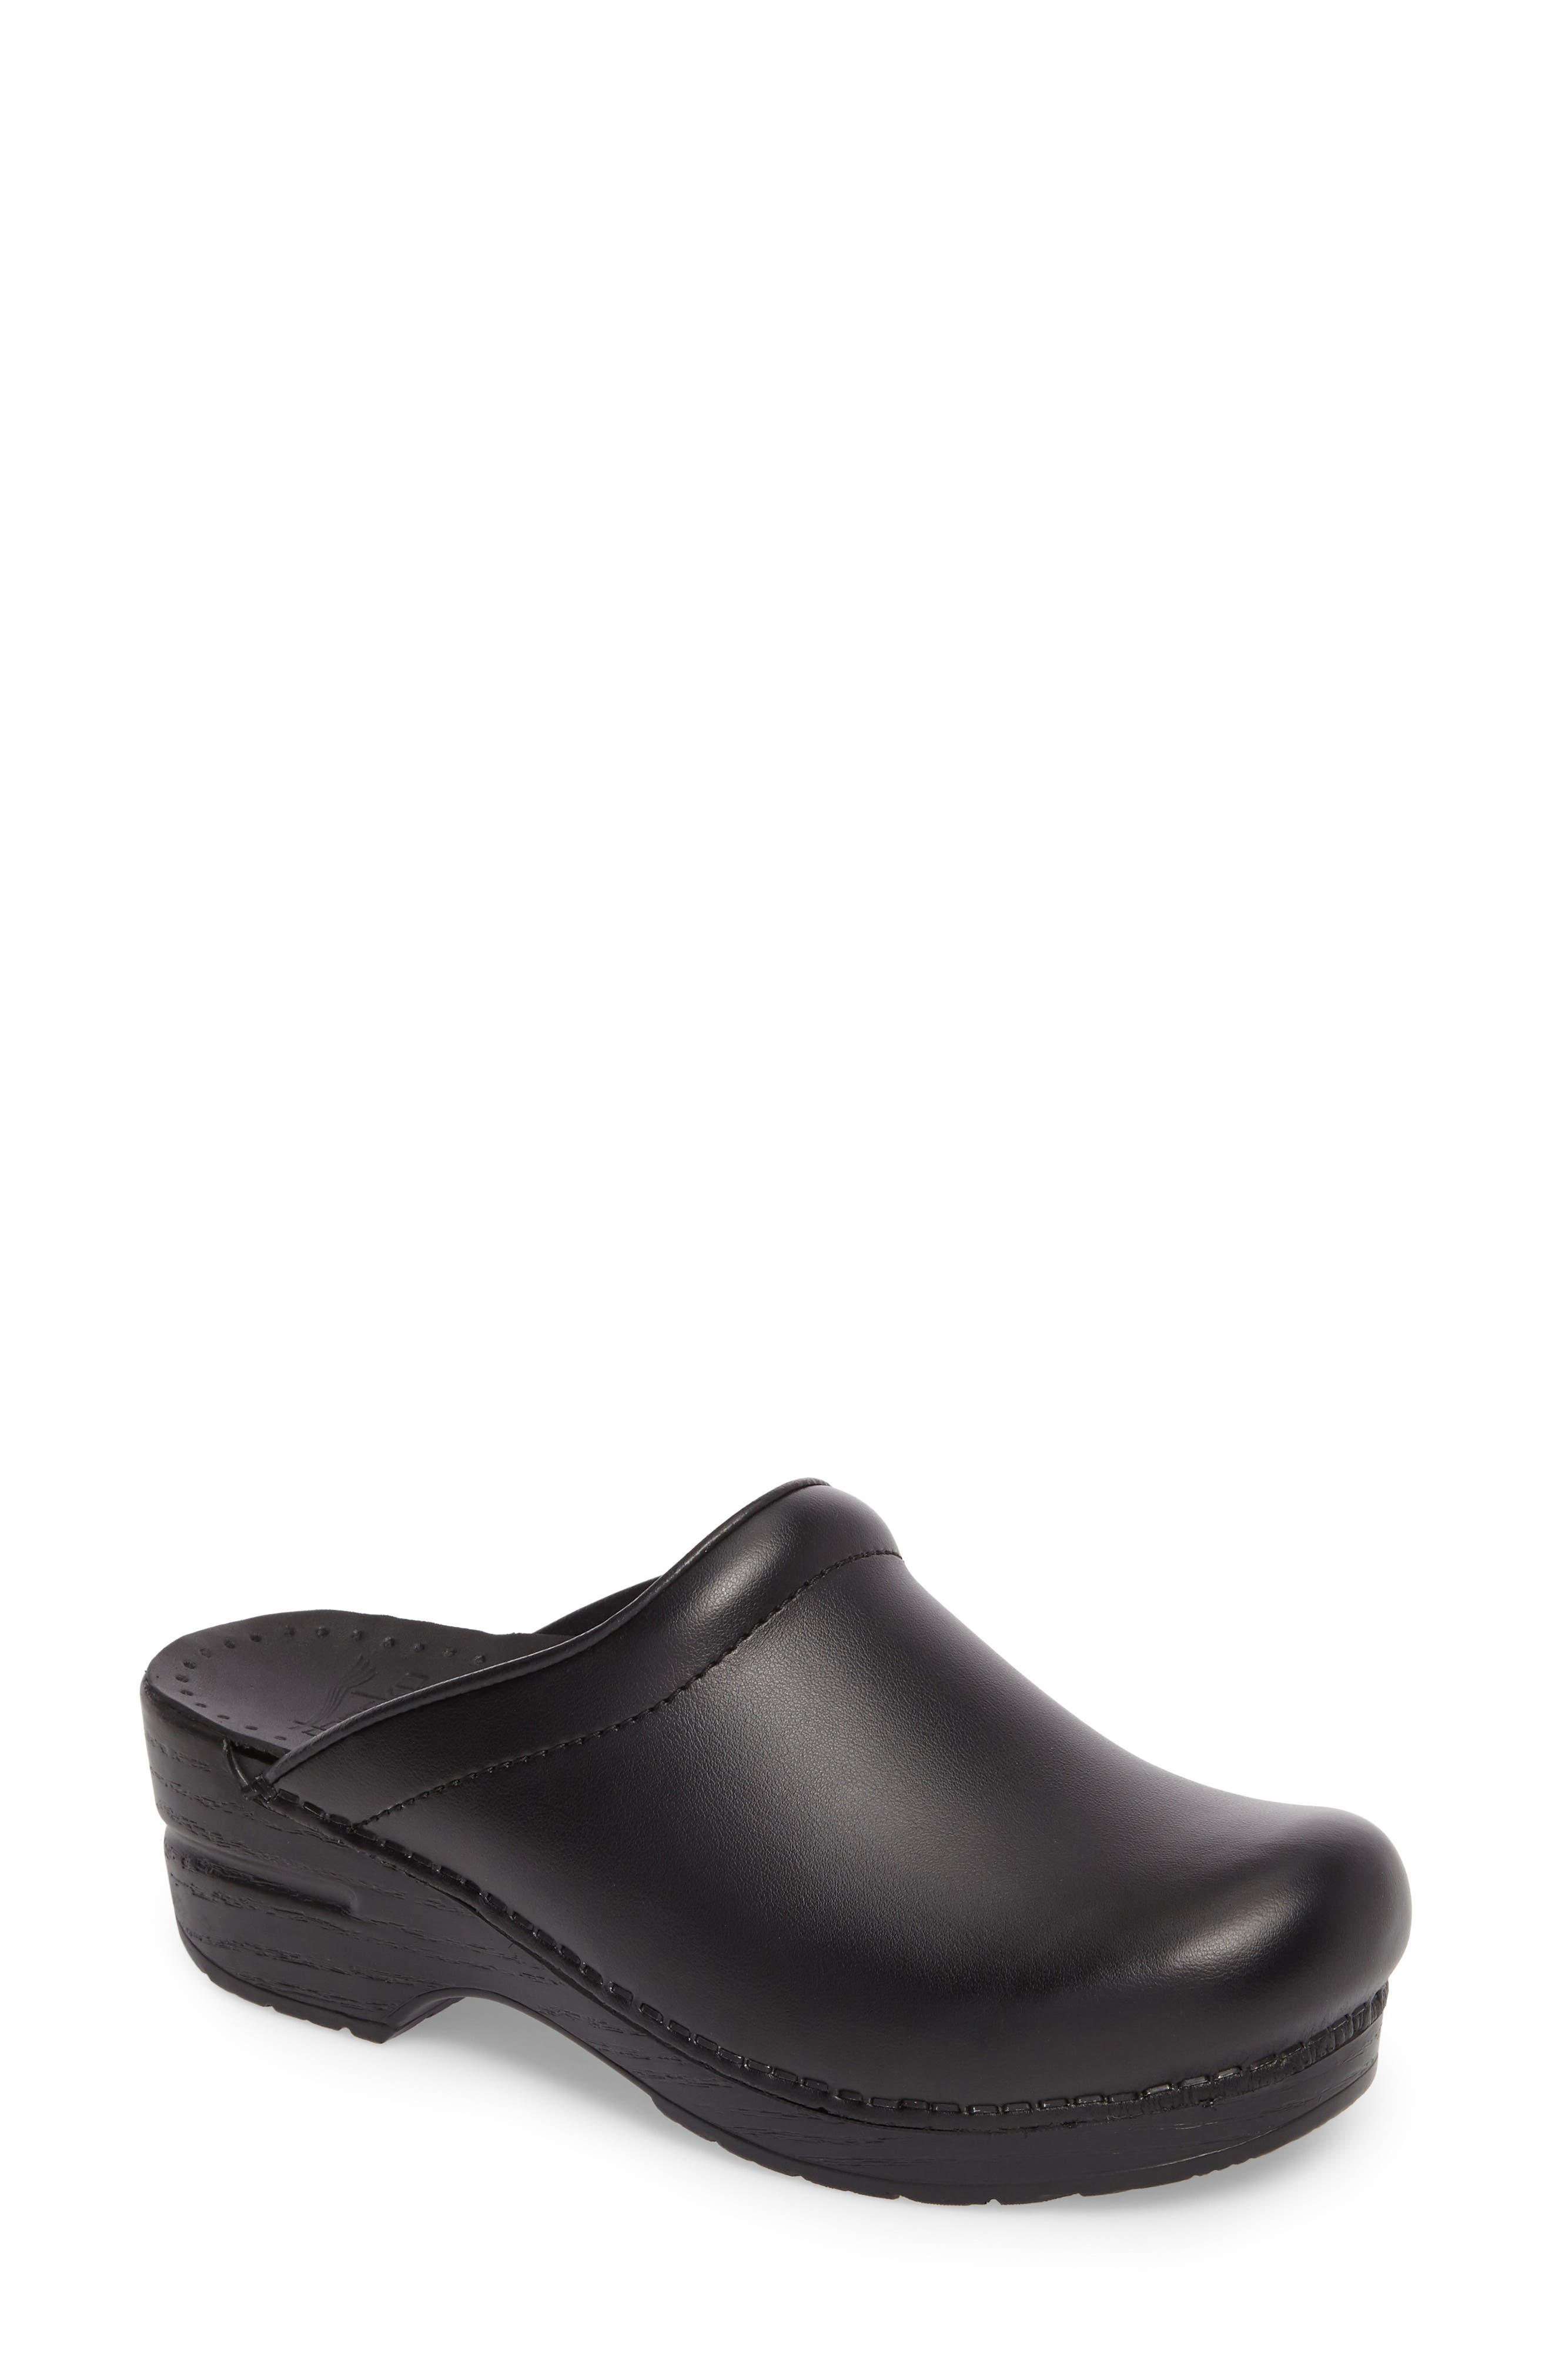 Dansko 'Sonja' Patent Leather Clog